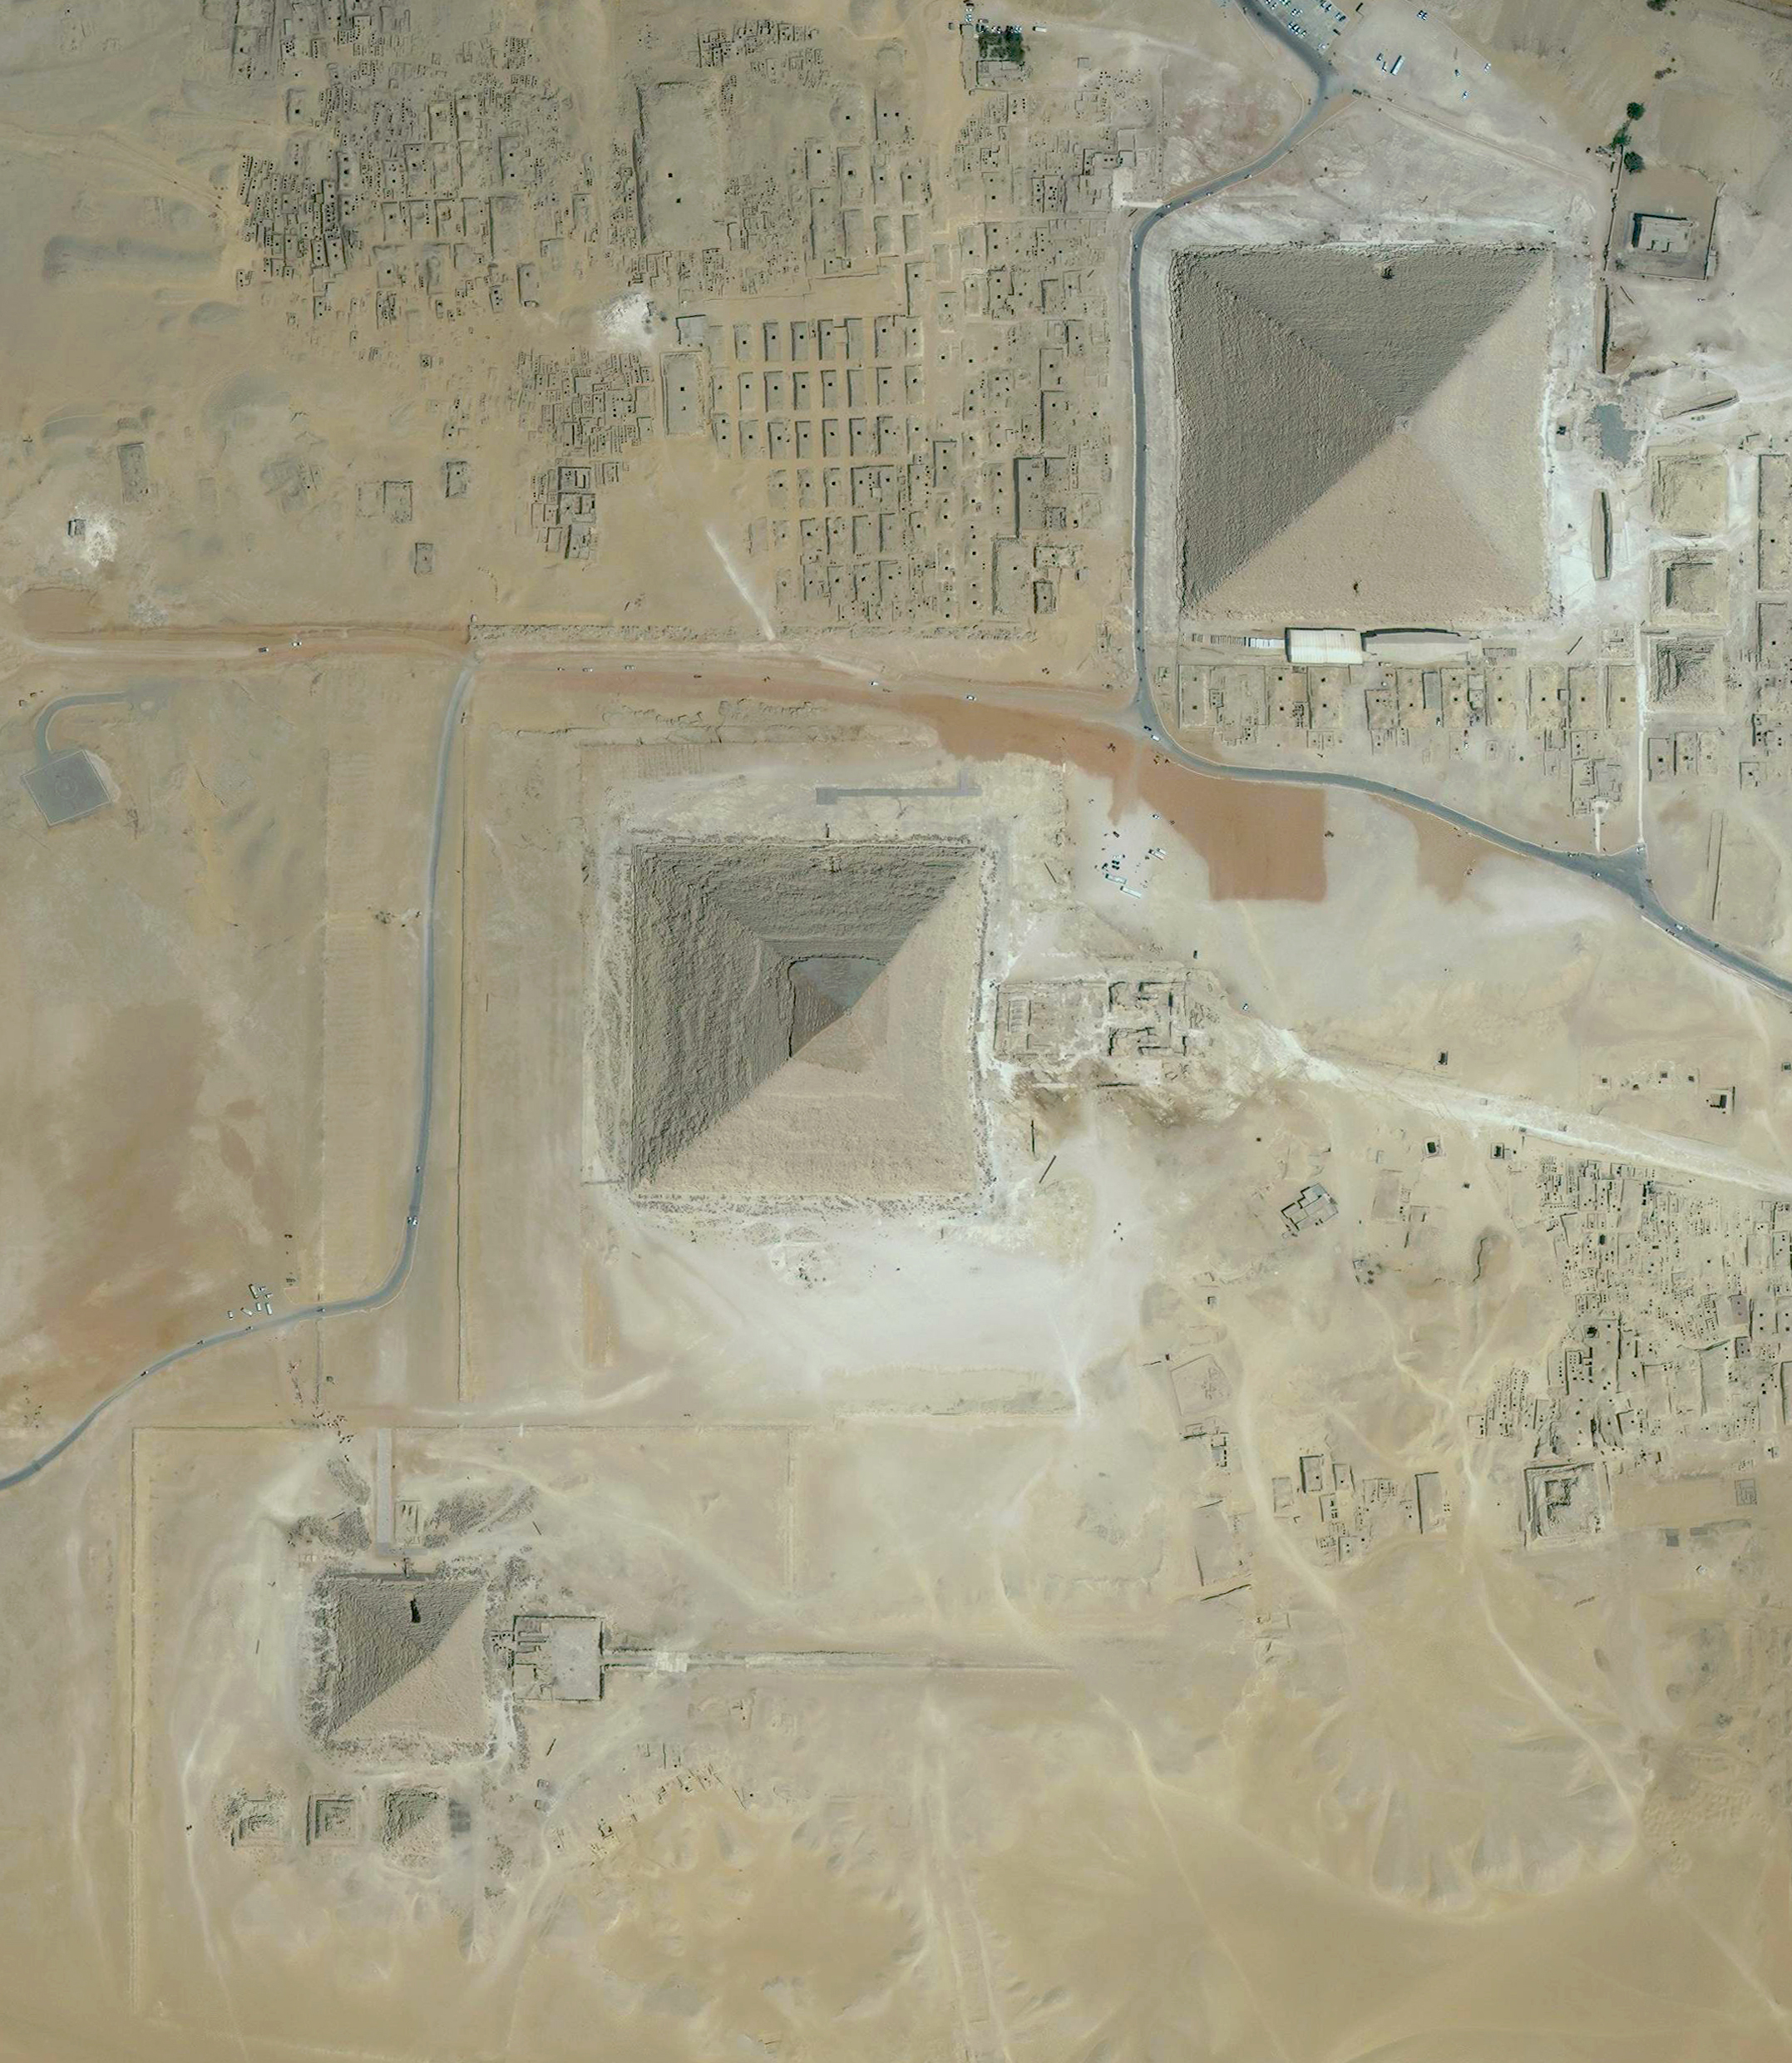 2/28/2016    Pyramids of Giza     Giza, Egypt    29°58′34″N 31°7′58″E     The Great Pyramids of Giza are located on the outskirts of Cairo, Egypt. Dating back to 2580 BC, the Great Pyramid, the largest structure at the site, is the oldest of the Seven Wonders of the Ancient world and the only one to remain largely intact. With an estimated 2,300,000 stone blocks weighing from 2 to 30 tons each, the 481 foot pyramid was the tallest structure in the world for more than 3,800 years.